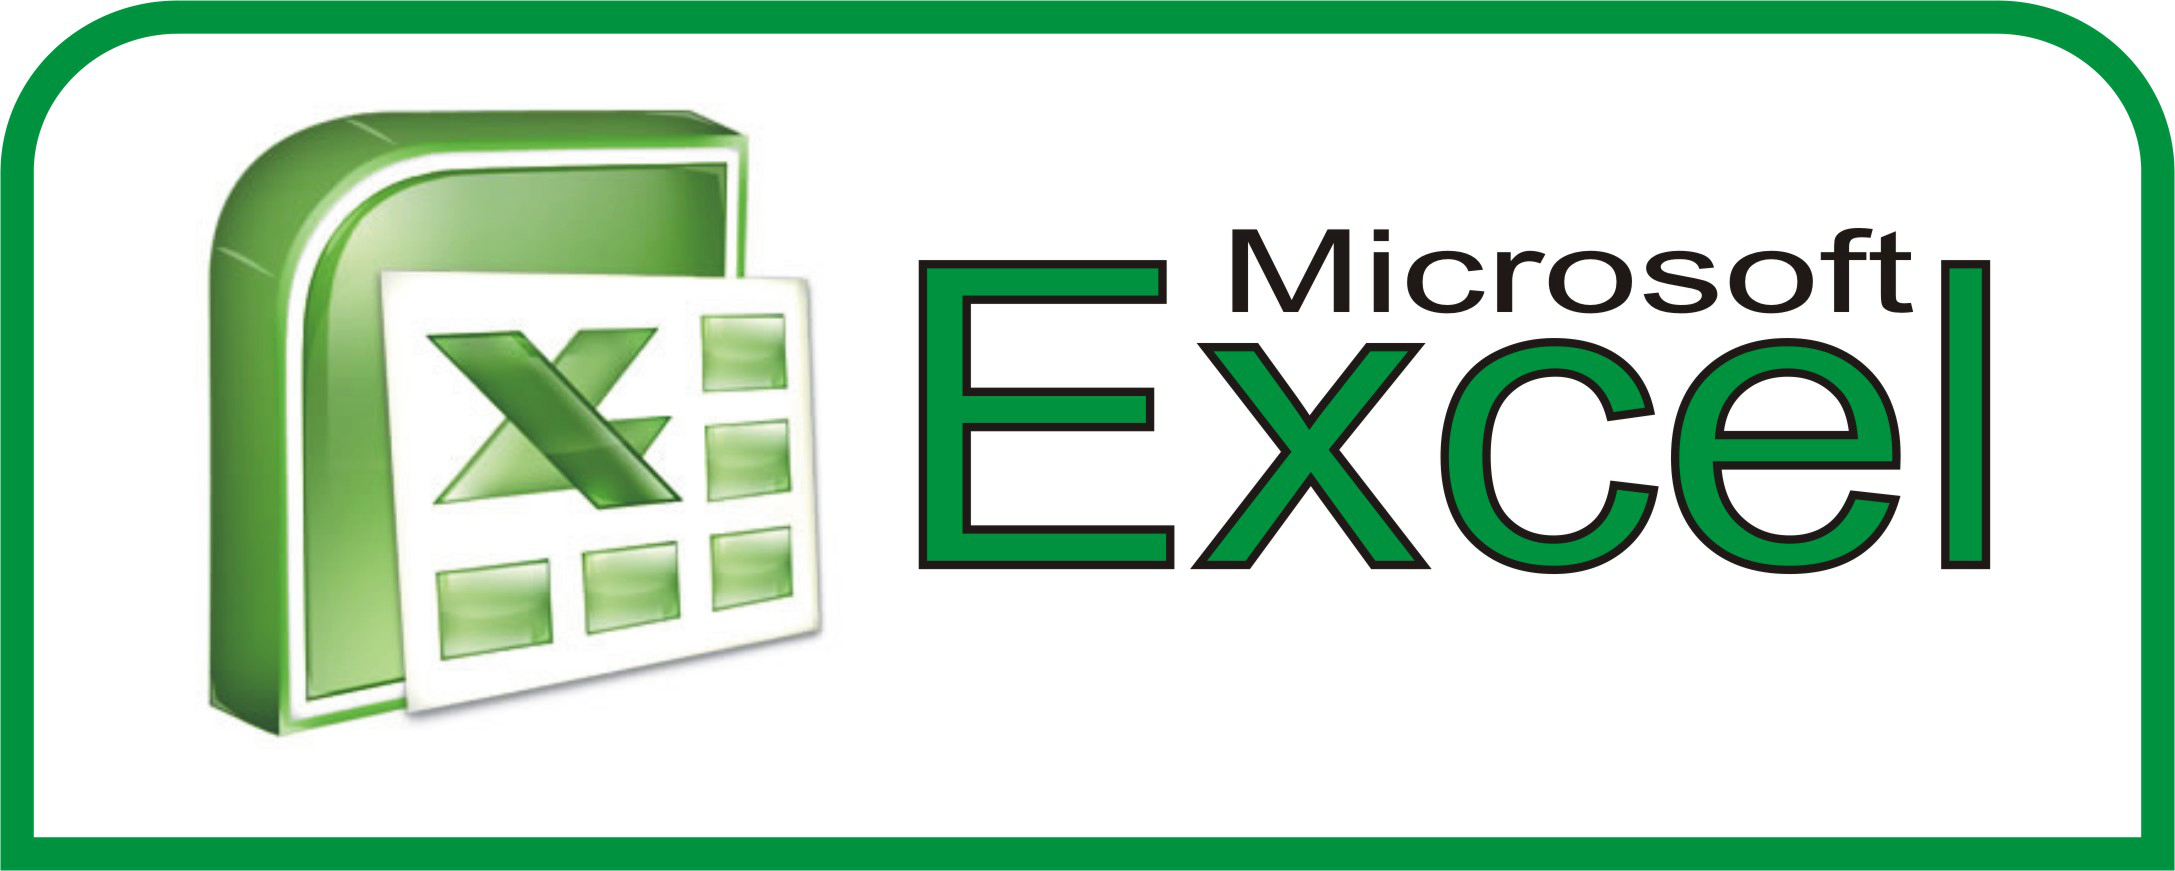 Ediblewildsus  Mesmerizing  Excel Shortcuts You Probably Didnt Know About  Techdissected With Outstanding Excel Formula Conditional Formatting Besides Excel Xml Import Furthermore Outlook Import Contacts From Excel With Charming How Do You Sum In Excel Also Day Formula In Excel In Addition Free Excel Project Management Templates And Excel Convert Text To Formula As Well As Round A Number In Excel Additionally Copy Word Table To Excel From Techdissectedcom With Ediblewildsus  Outstanding  Excel Shortcuts You Probably Didnt Know About  Techdissected With Charming Excel Formula Conditional Formatting Besides Excel Xml Import Furthermore Outlook Import Contacts From Excel And Mesmerizing How Do You Sum In Excel Also Day Formula In Excel In Addition Free Excel Project Management Templates From Techdissectedcom